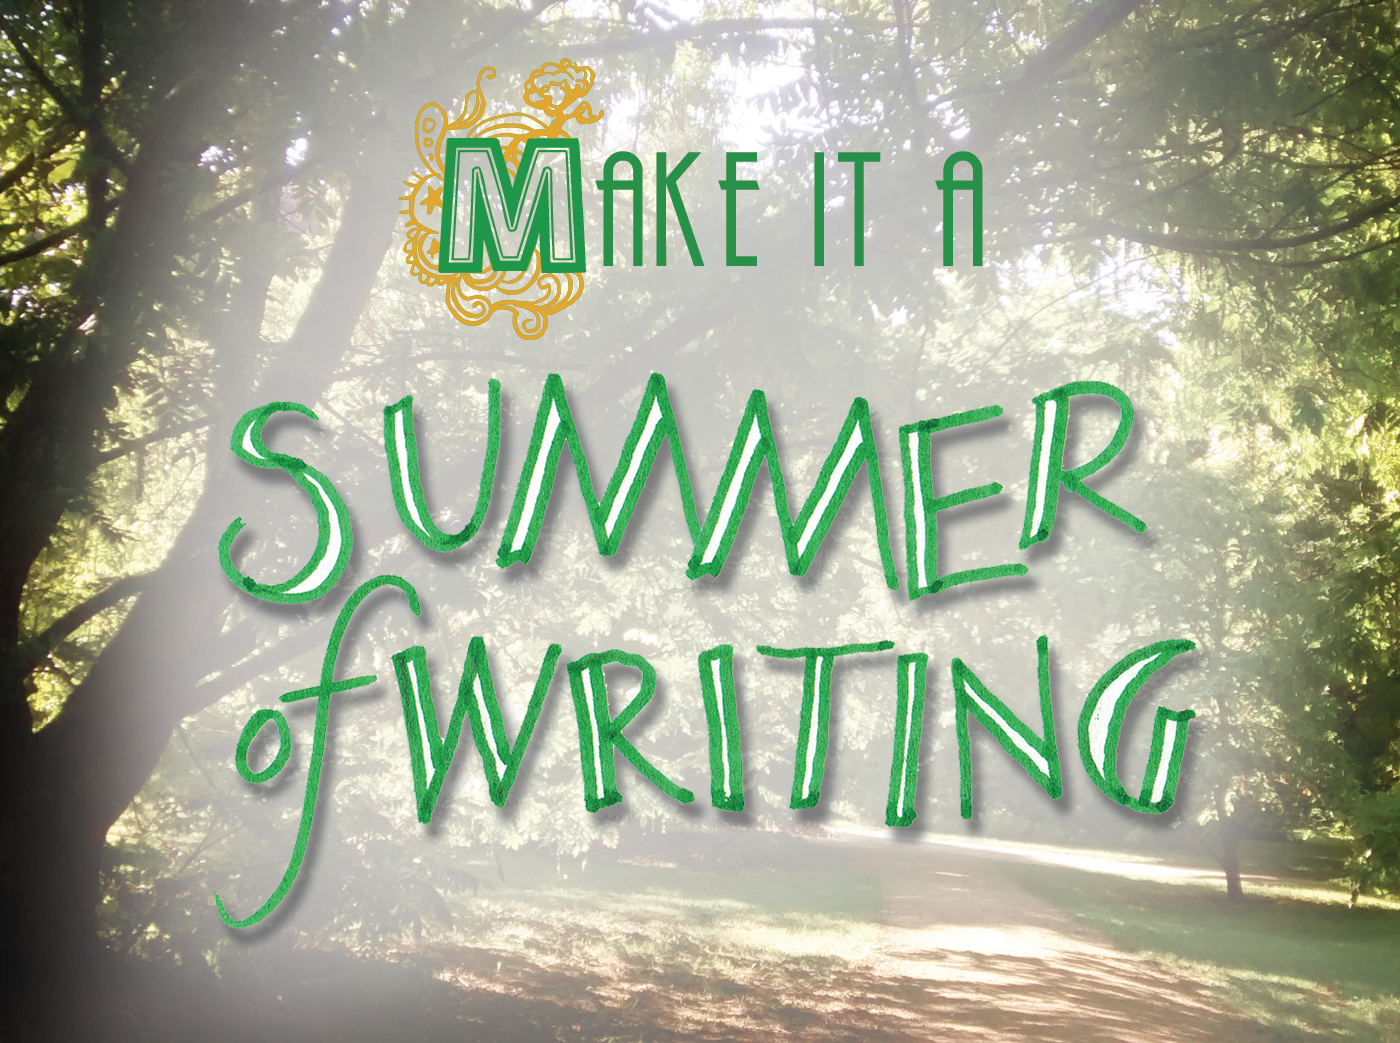 Summer Creative writing workshops for adults